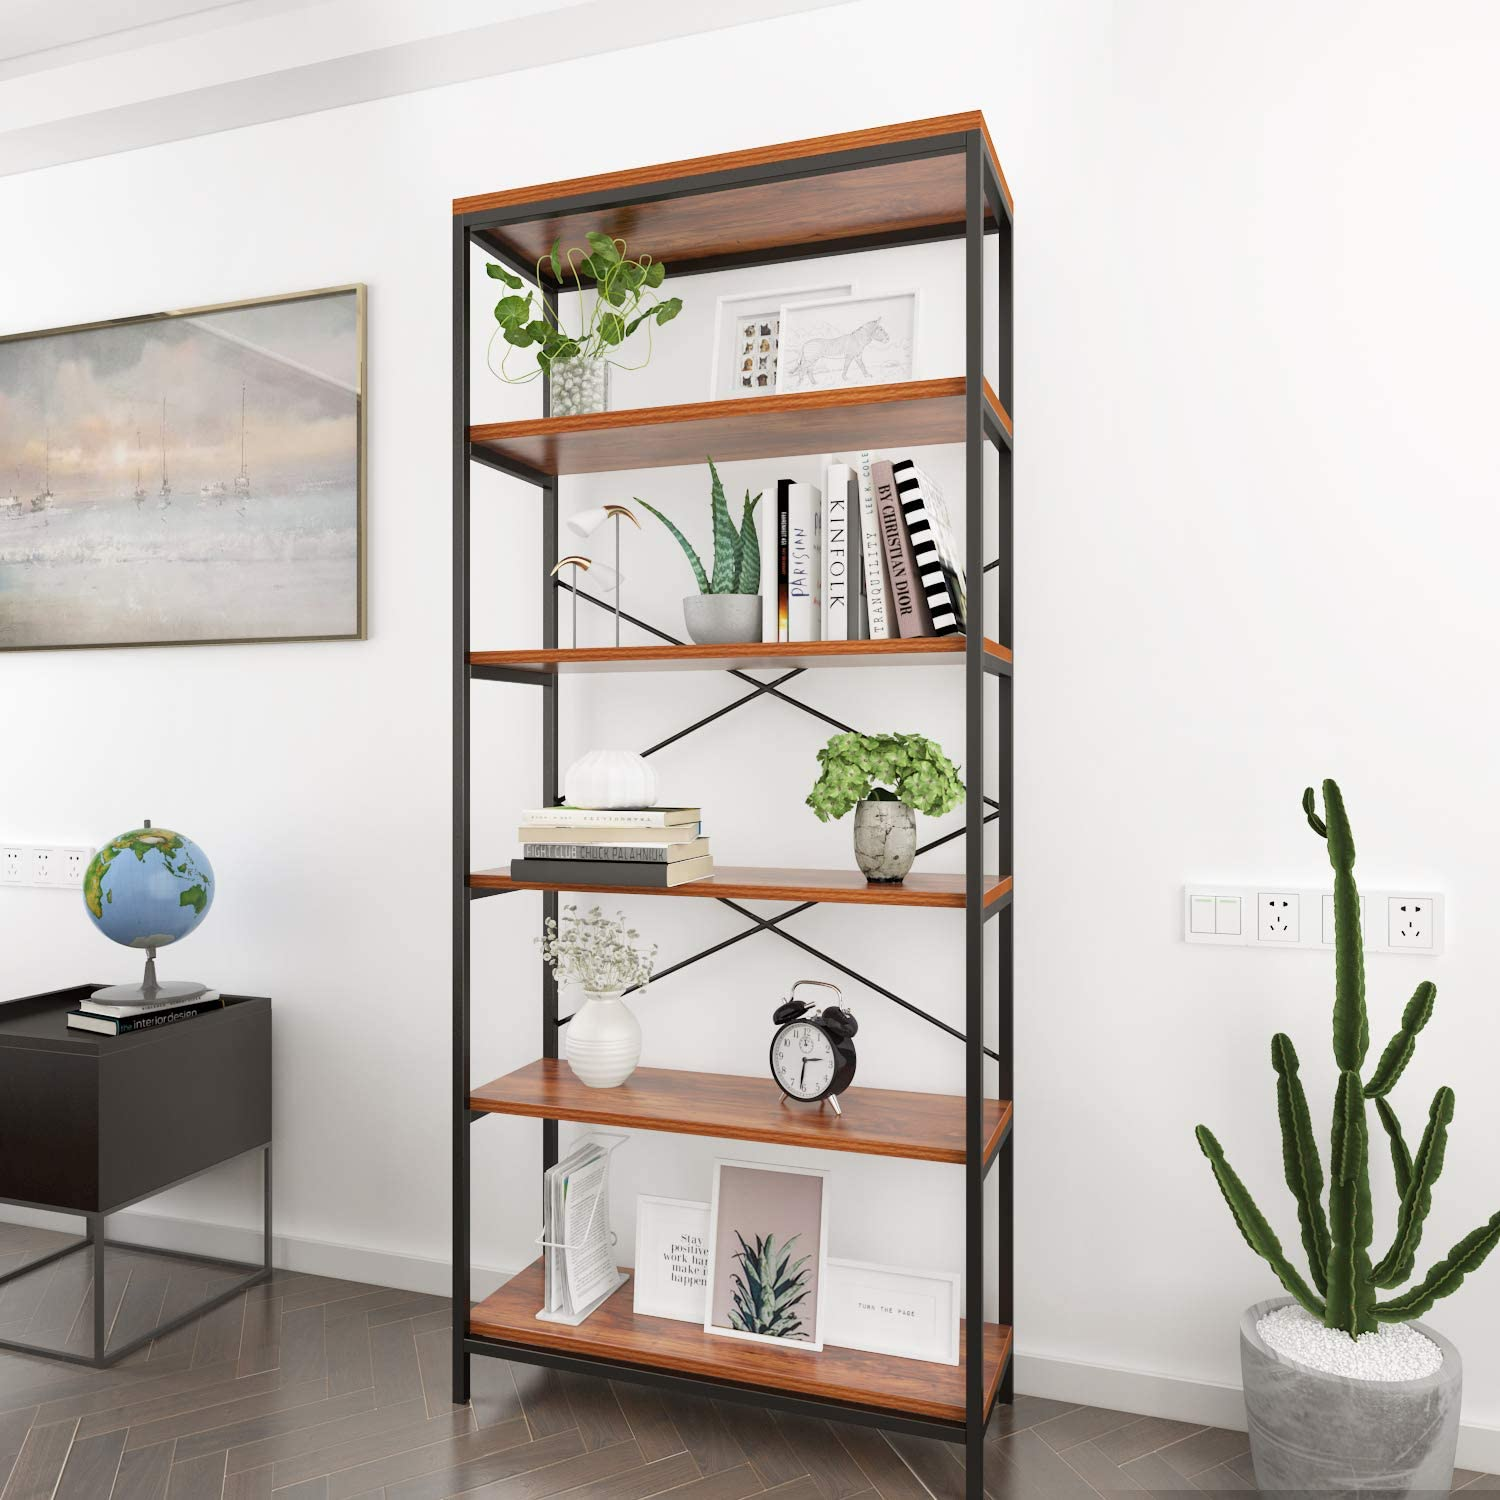 Nakey 5-Tier Vintage Bookcase Shelf, Industrial Style Metal and Wood Bookshelves and Bookcase, Display Rack and Home Office Storage Organizer US Stock